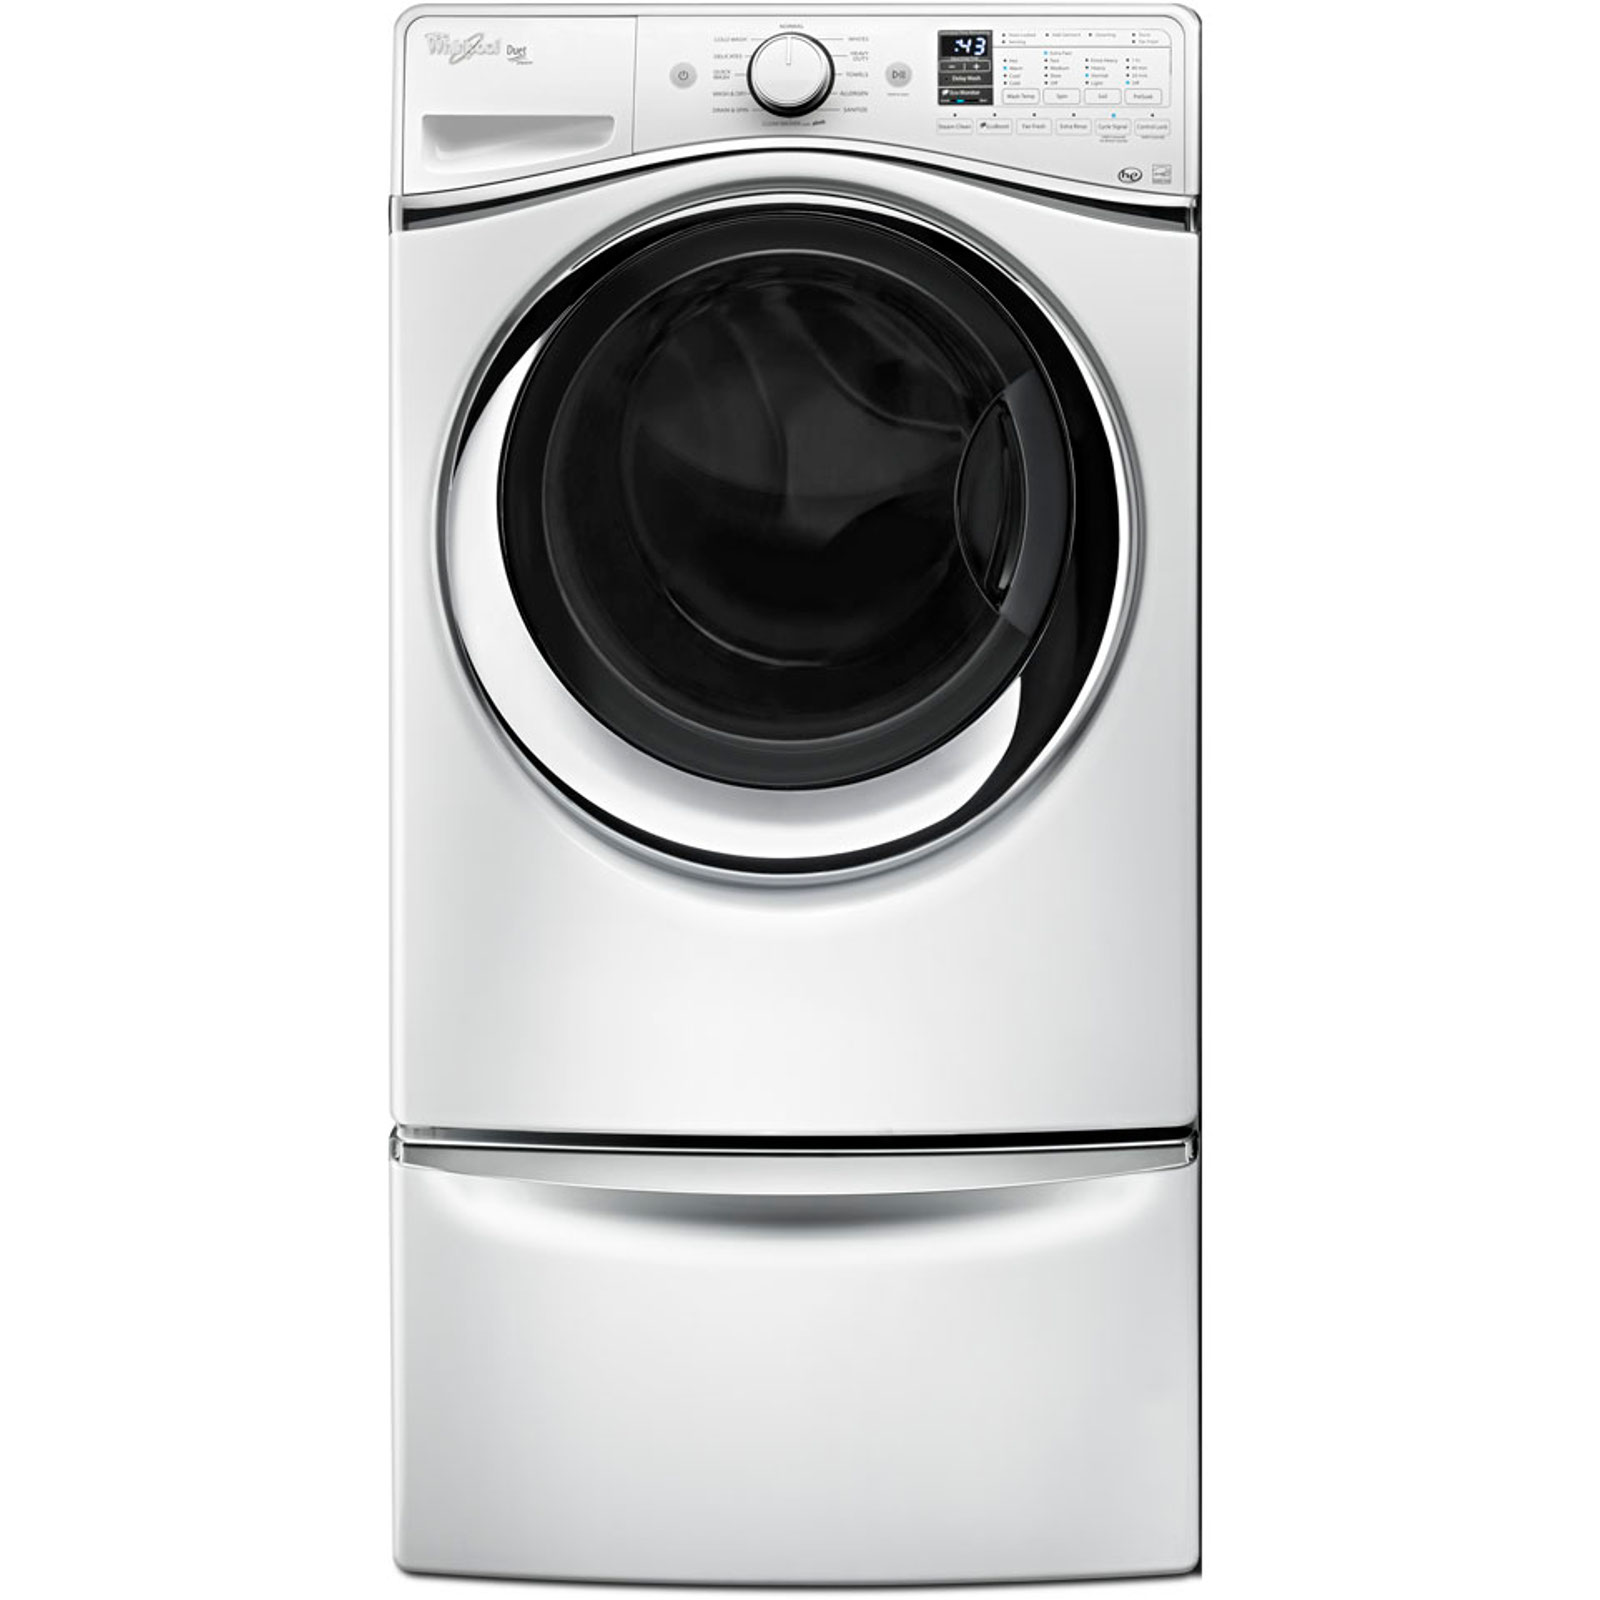 Whirlpool WFW95HEDW 4.5 cu. ft. Duet® Front-Load Washer w/ Wash and Dry Cycle - White